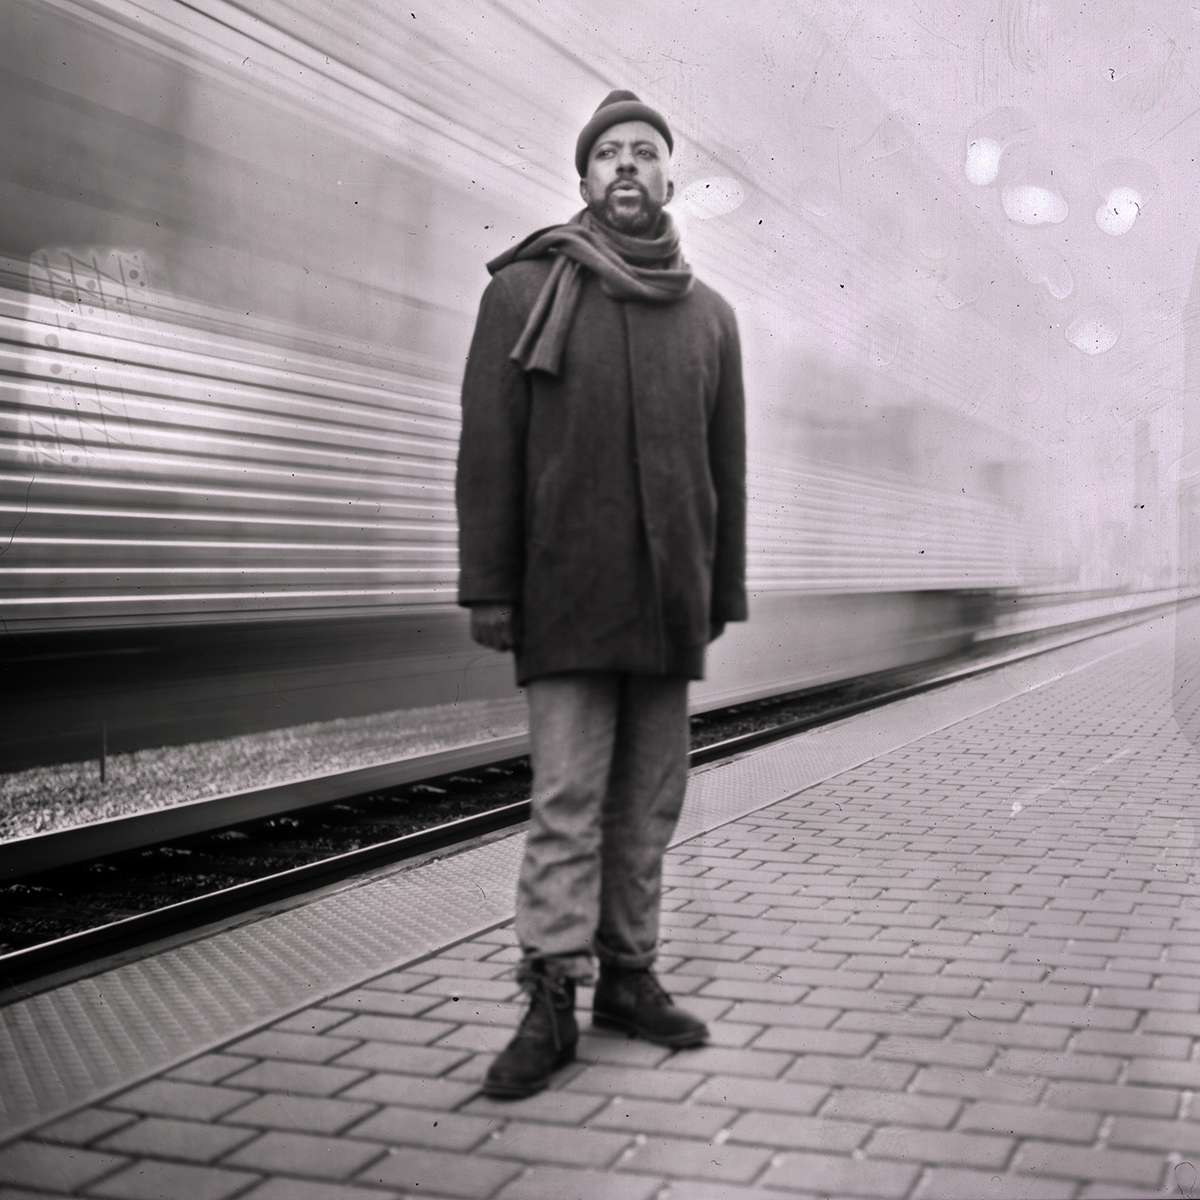 Ben LaMar Gay - Custom Album cover, 4x5 Large Format Film Photo.  This incredible album comes out May 4th!  Preview & Order here.